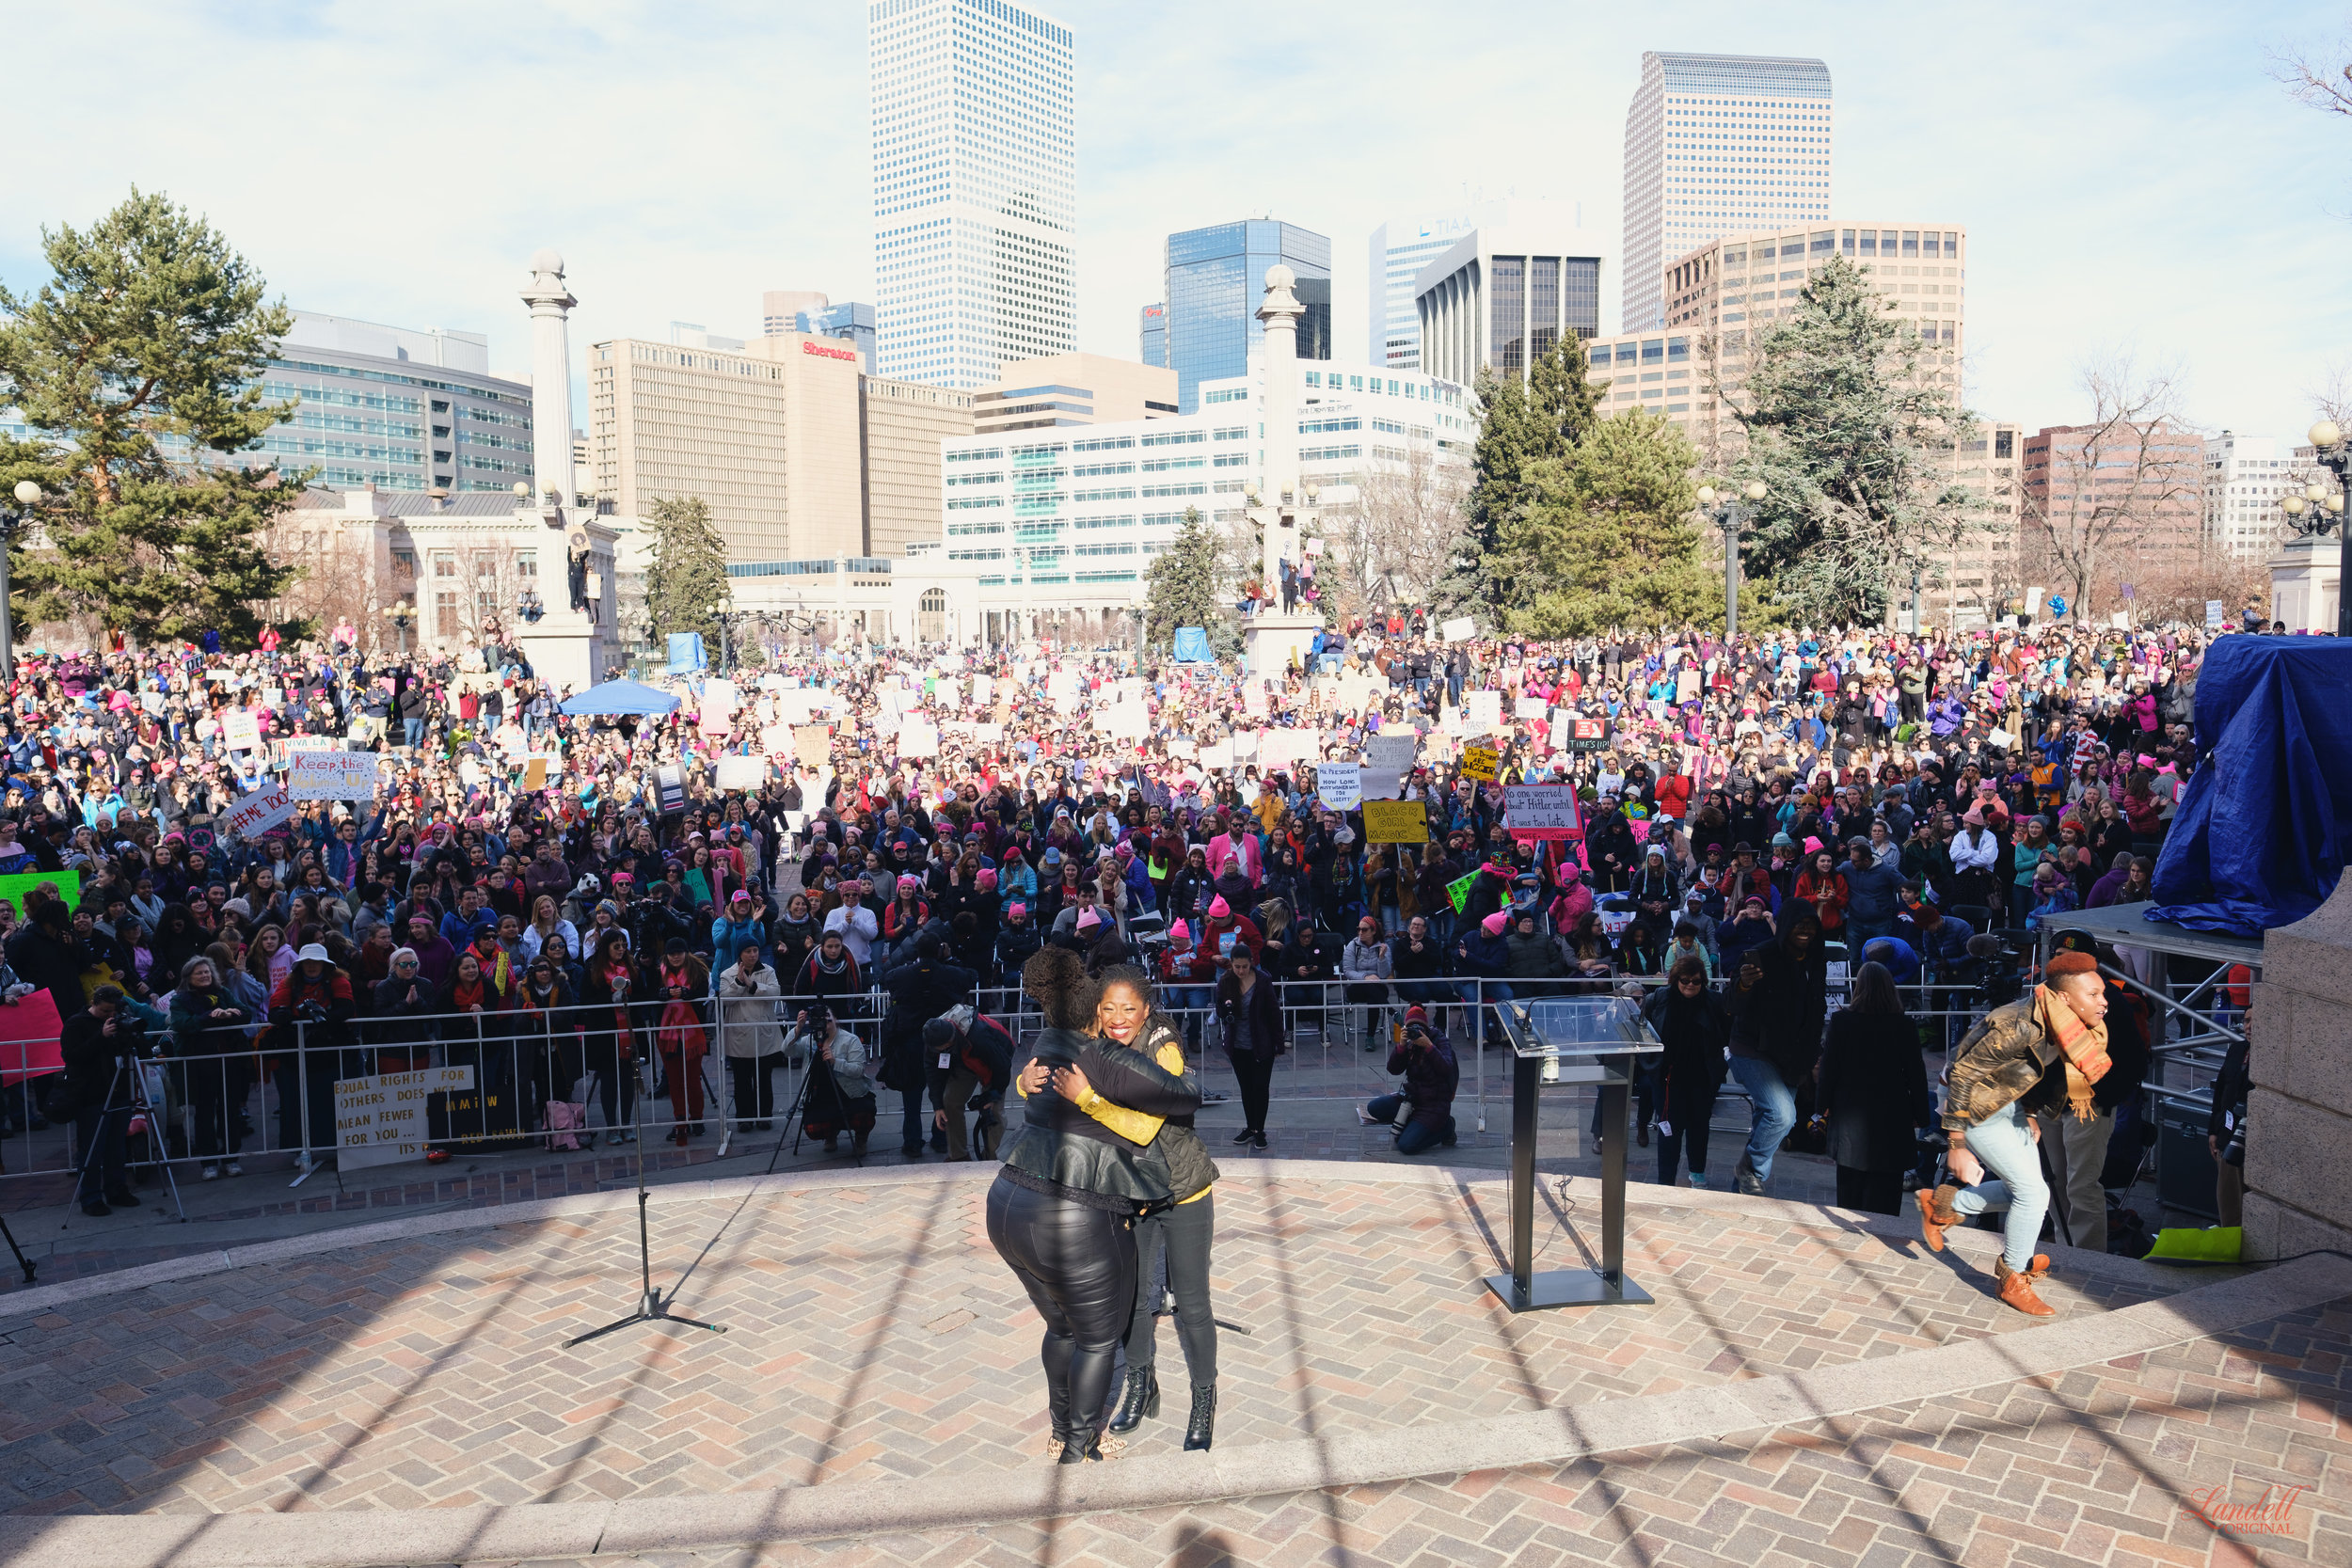 DENVER_WOMENS_MARCH-2018_01-20-2018_0118.jpg